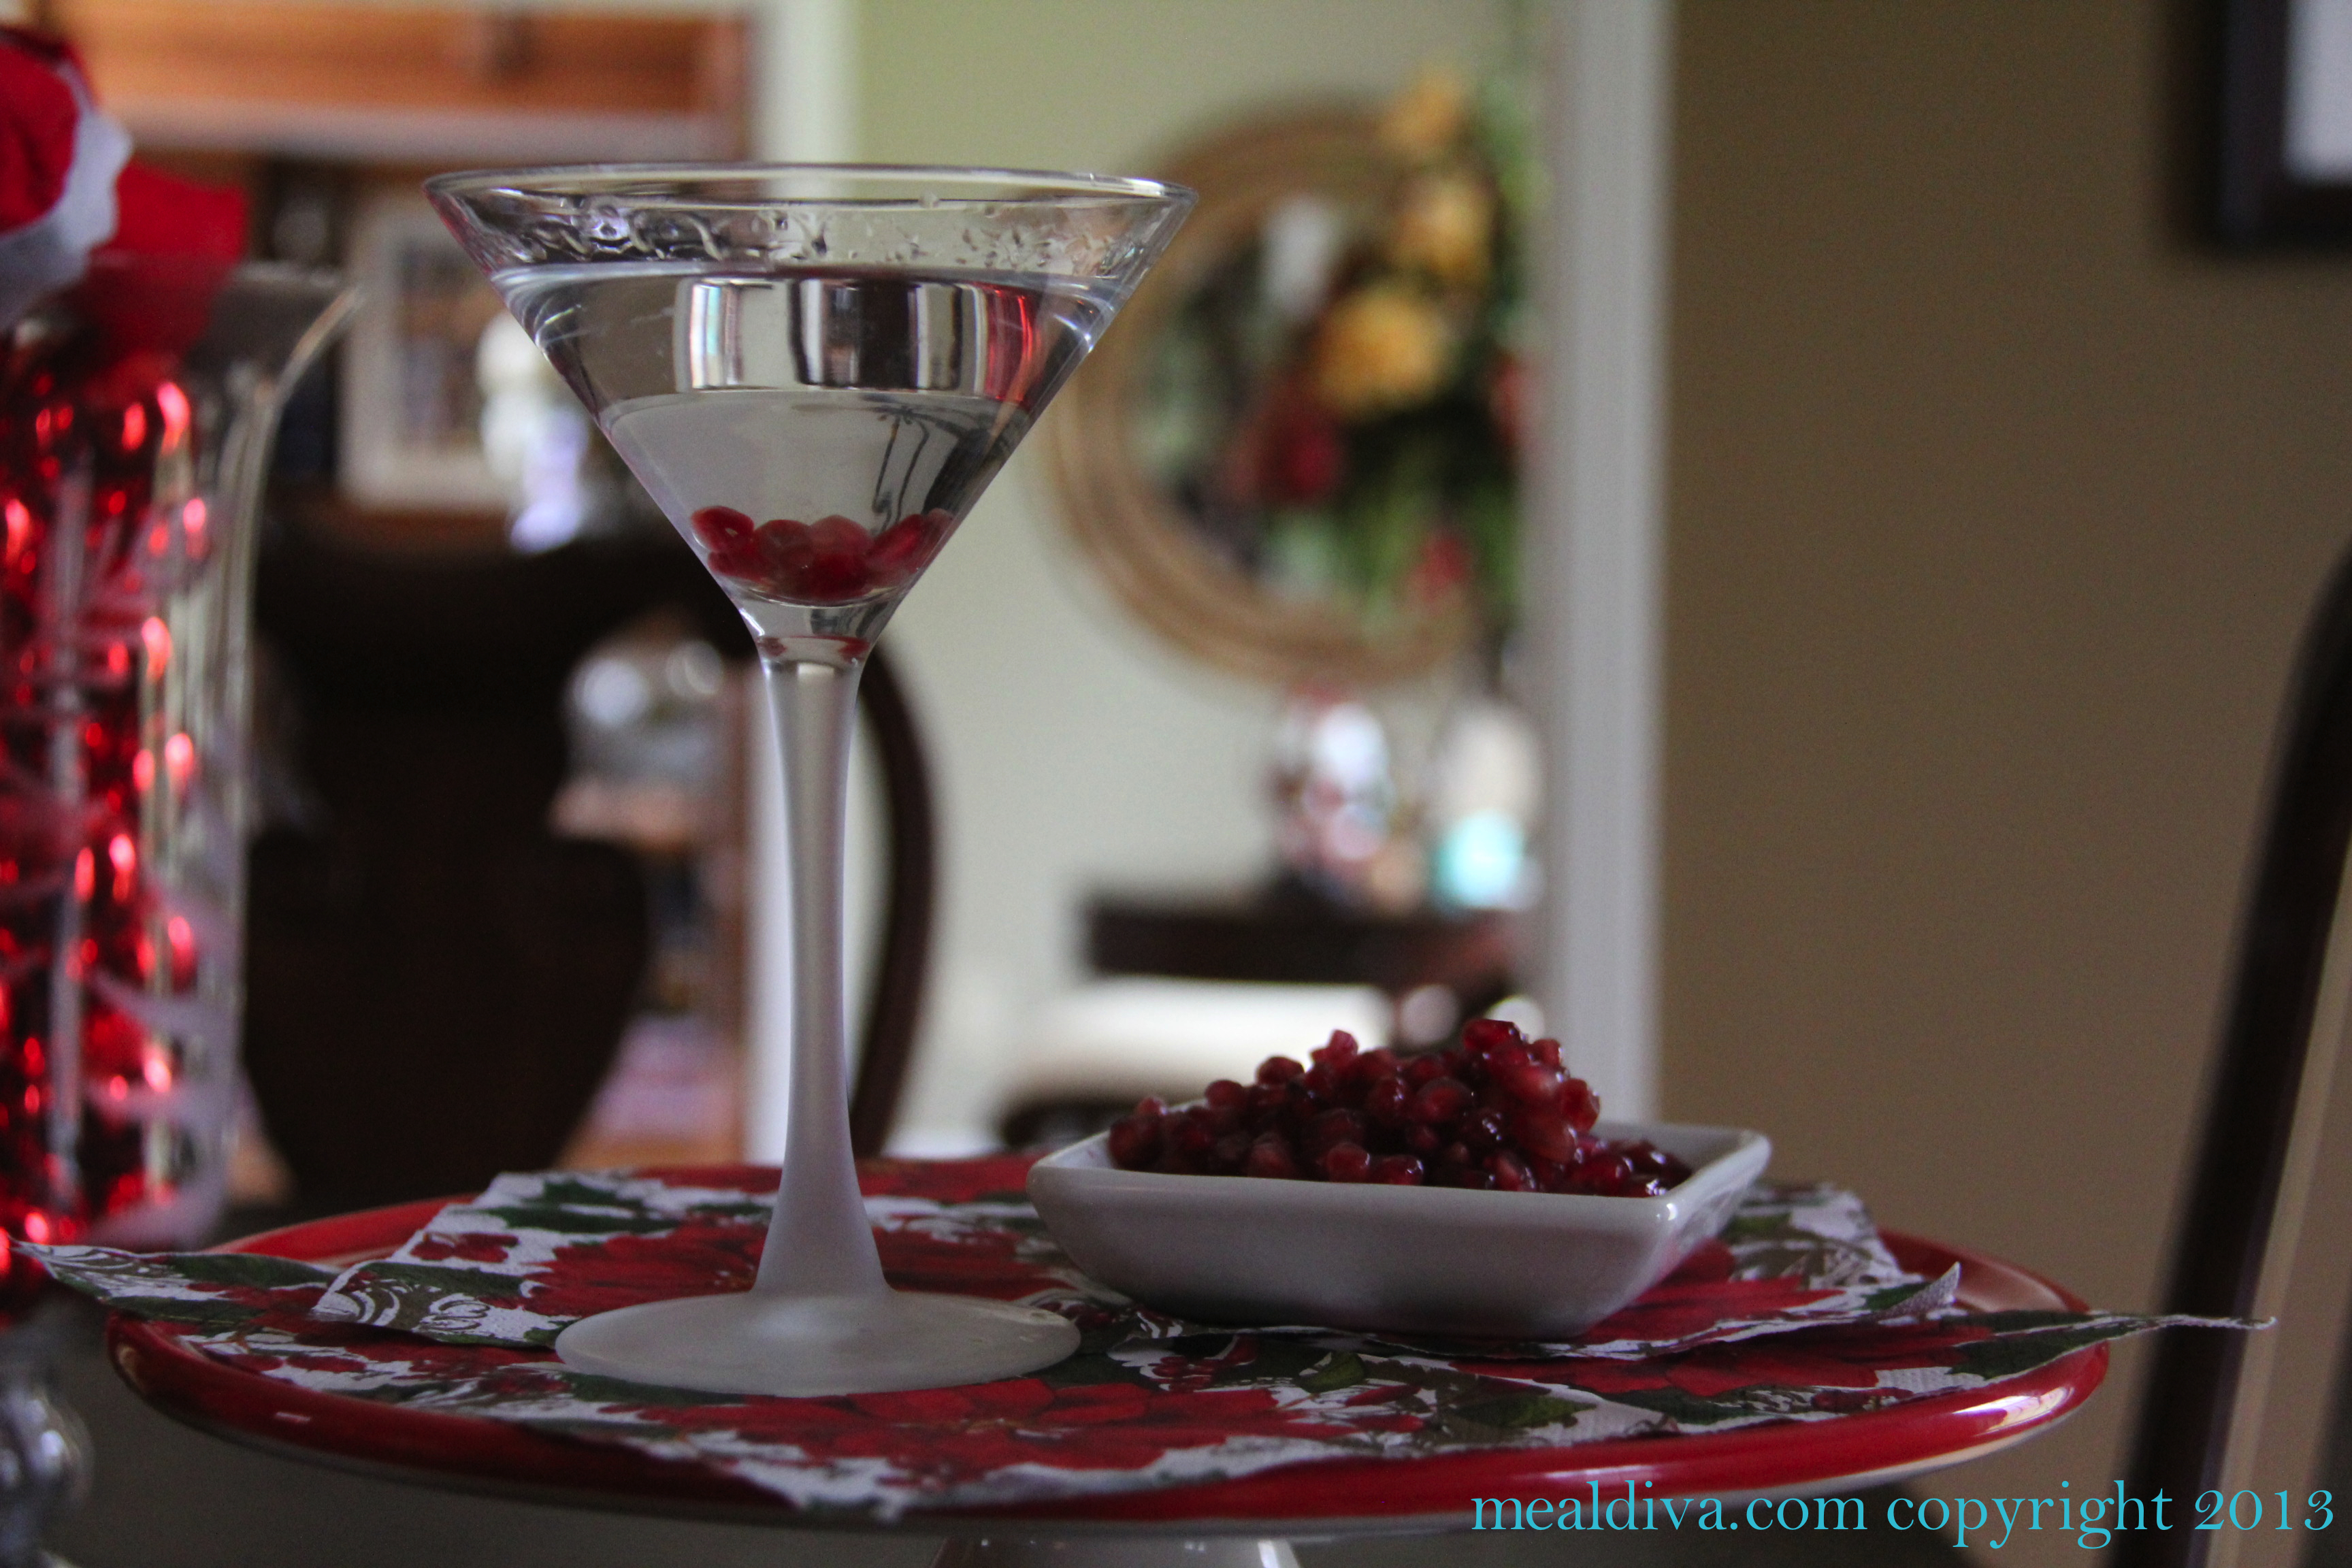 The Pomegranate: A Holiday Must